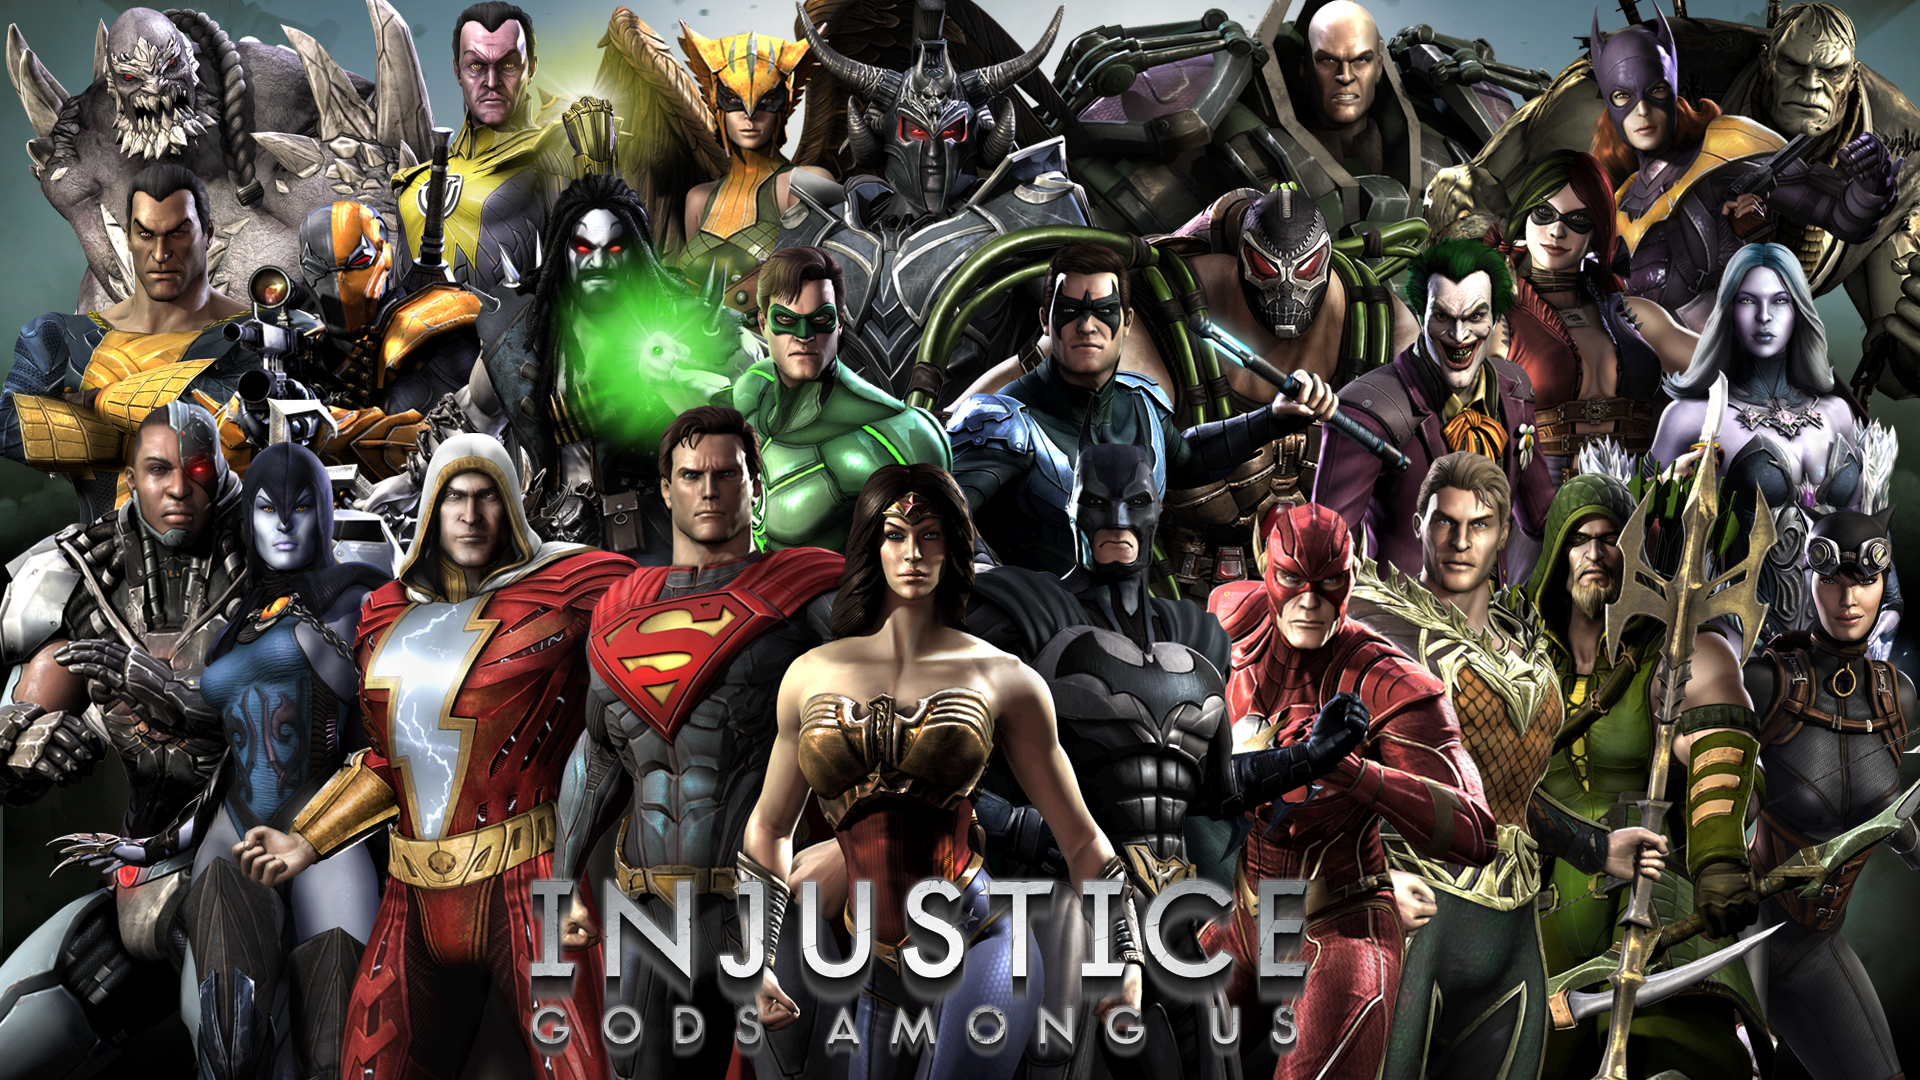 Injustice Gods Among Us 2345233 Hd Wallpaper Backgrounds Download